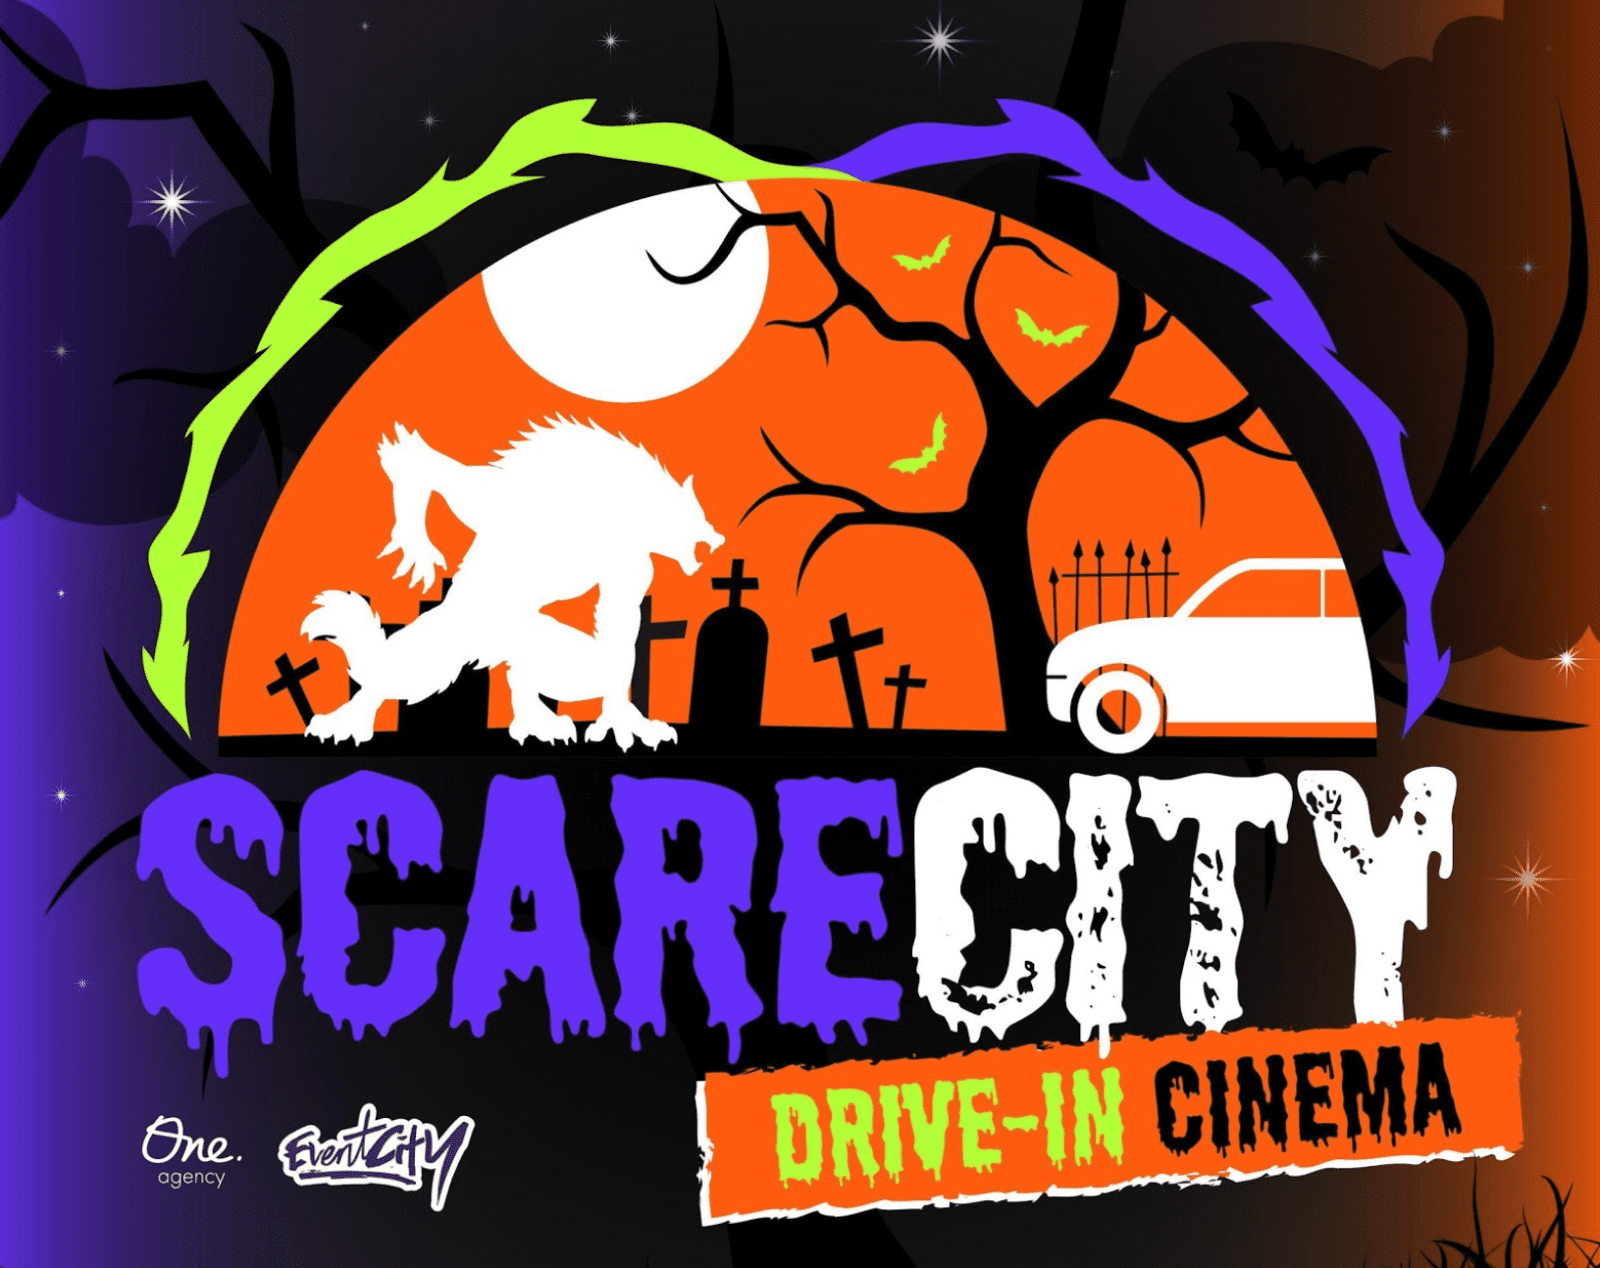 They're showing both The Conjuring films at immersive drive-in cinema Scare City next month, The Manc